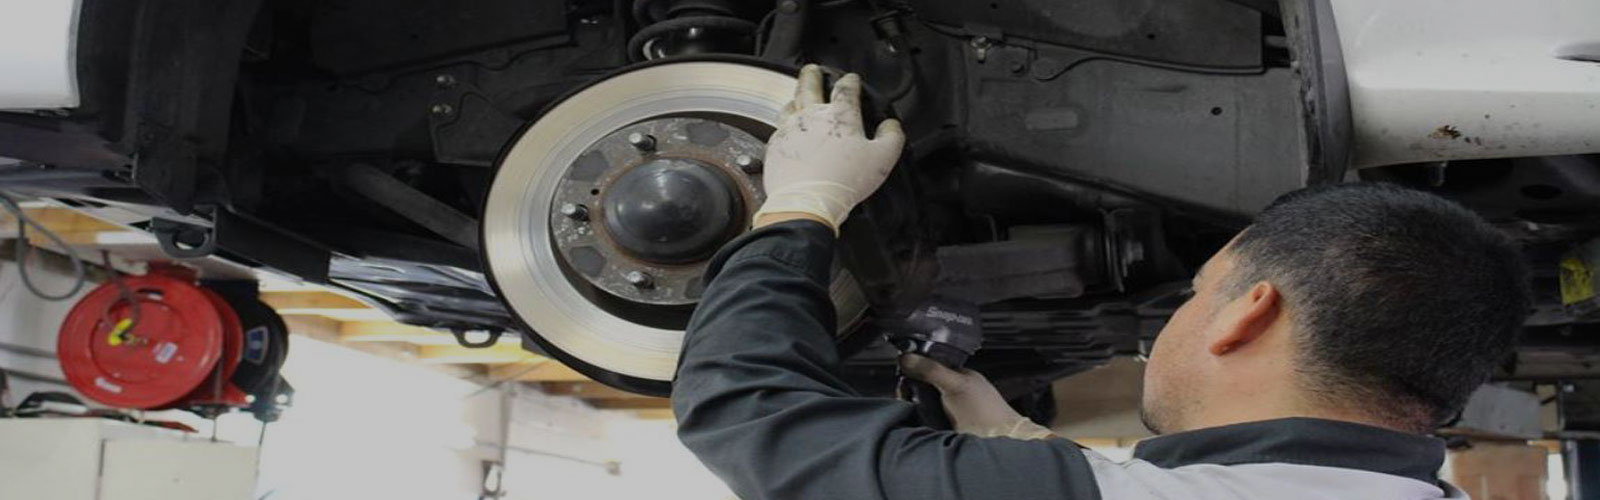 Technician servicing brakes